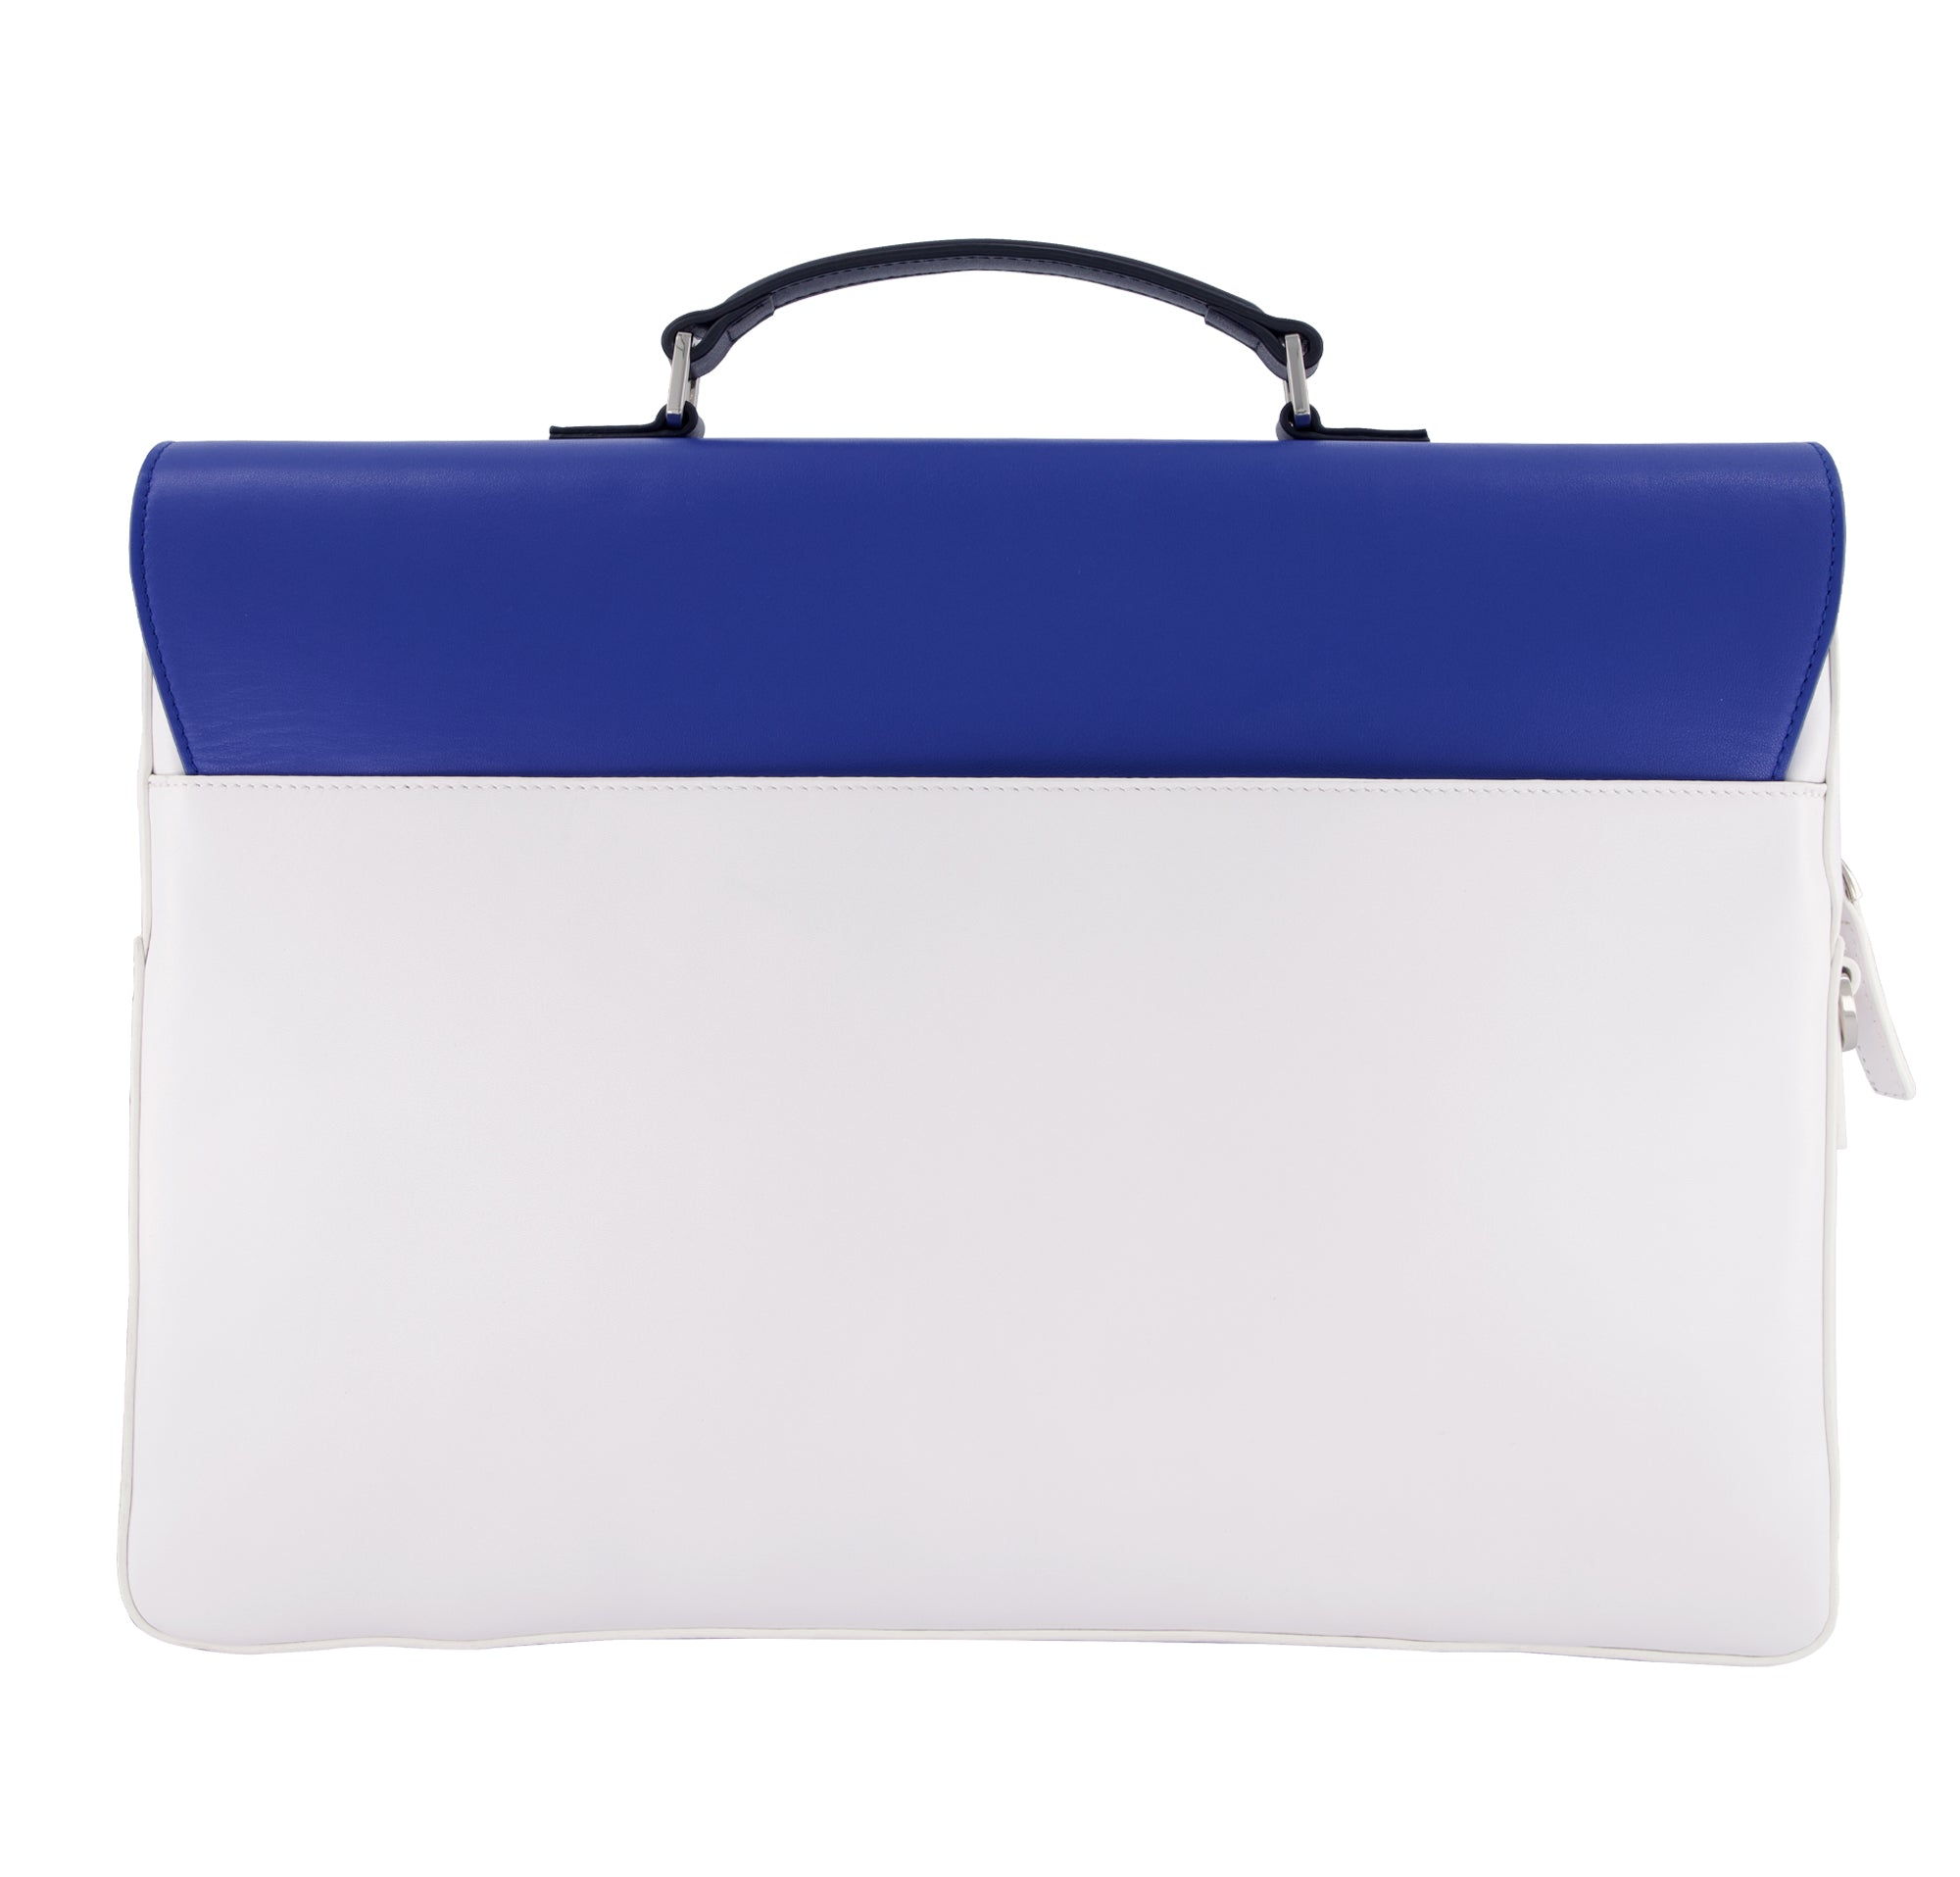 Folio Briefcase - White